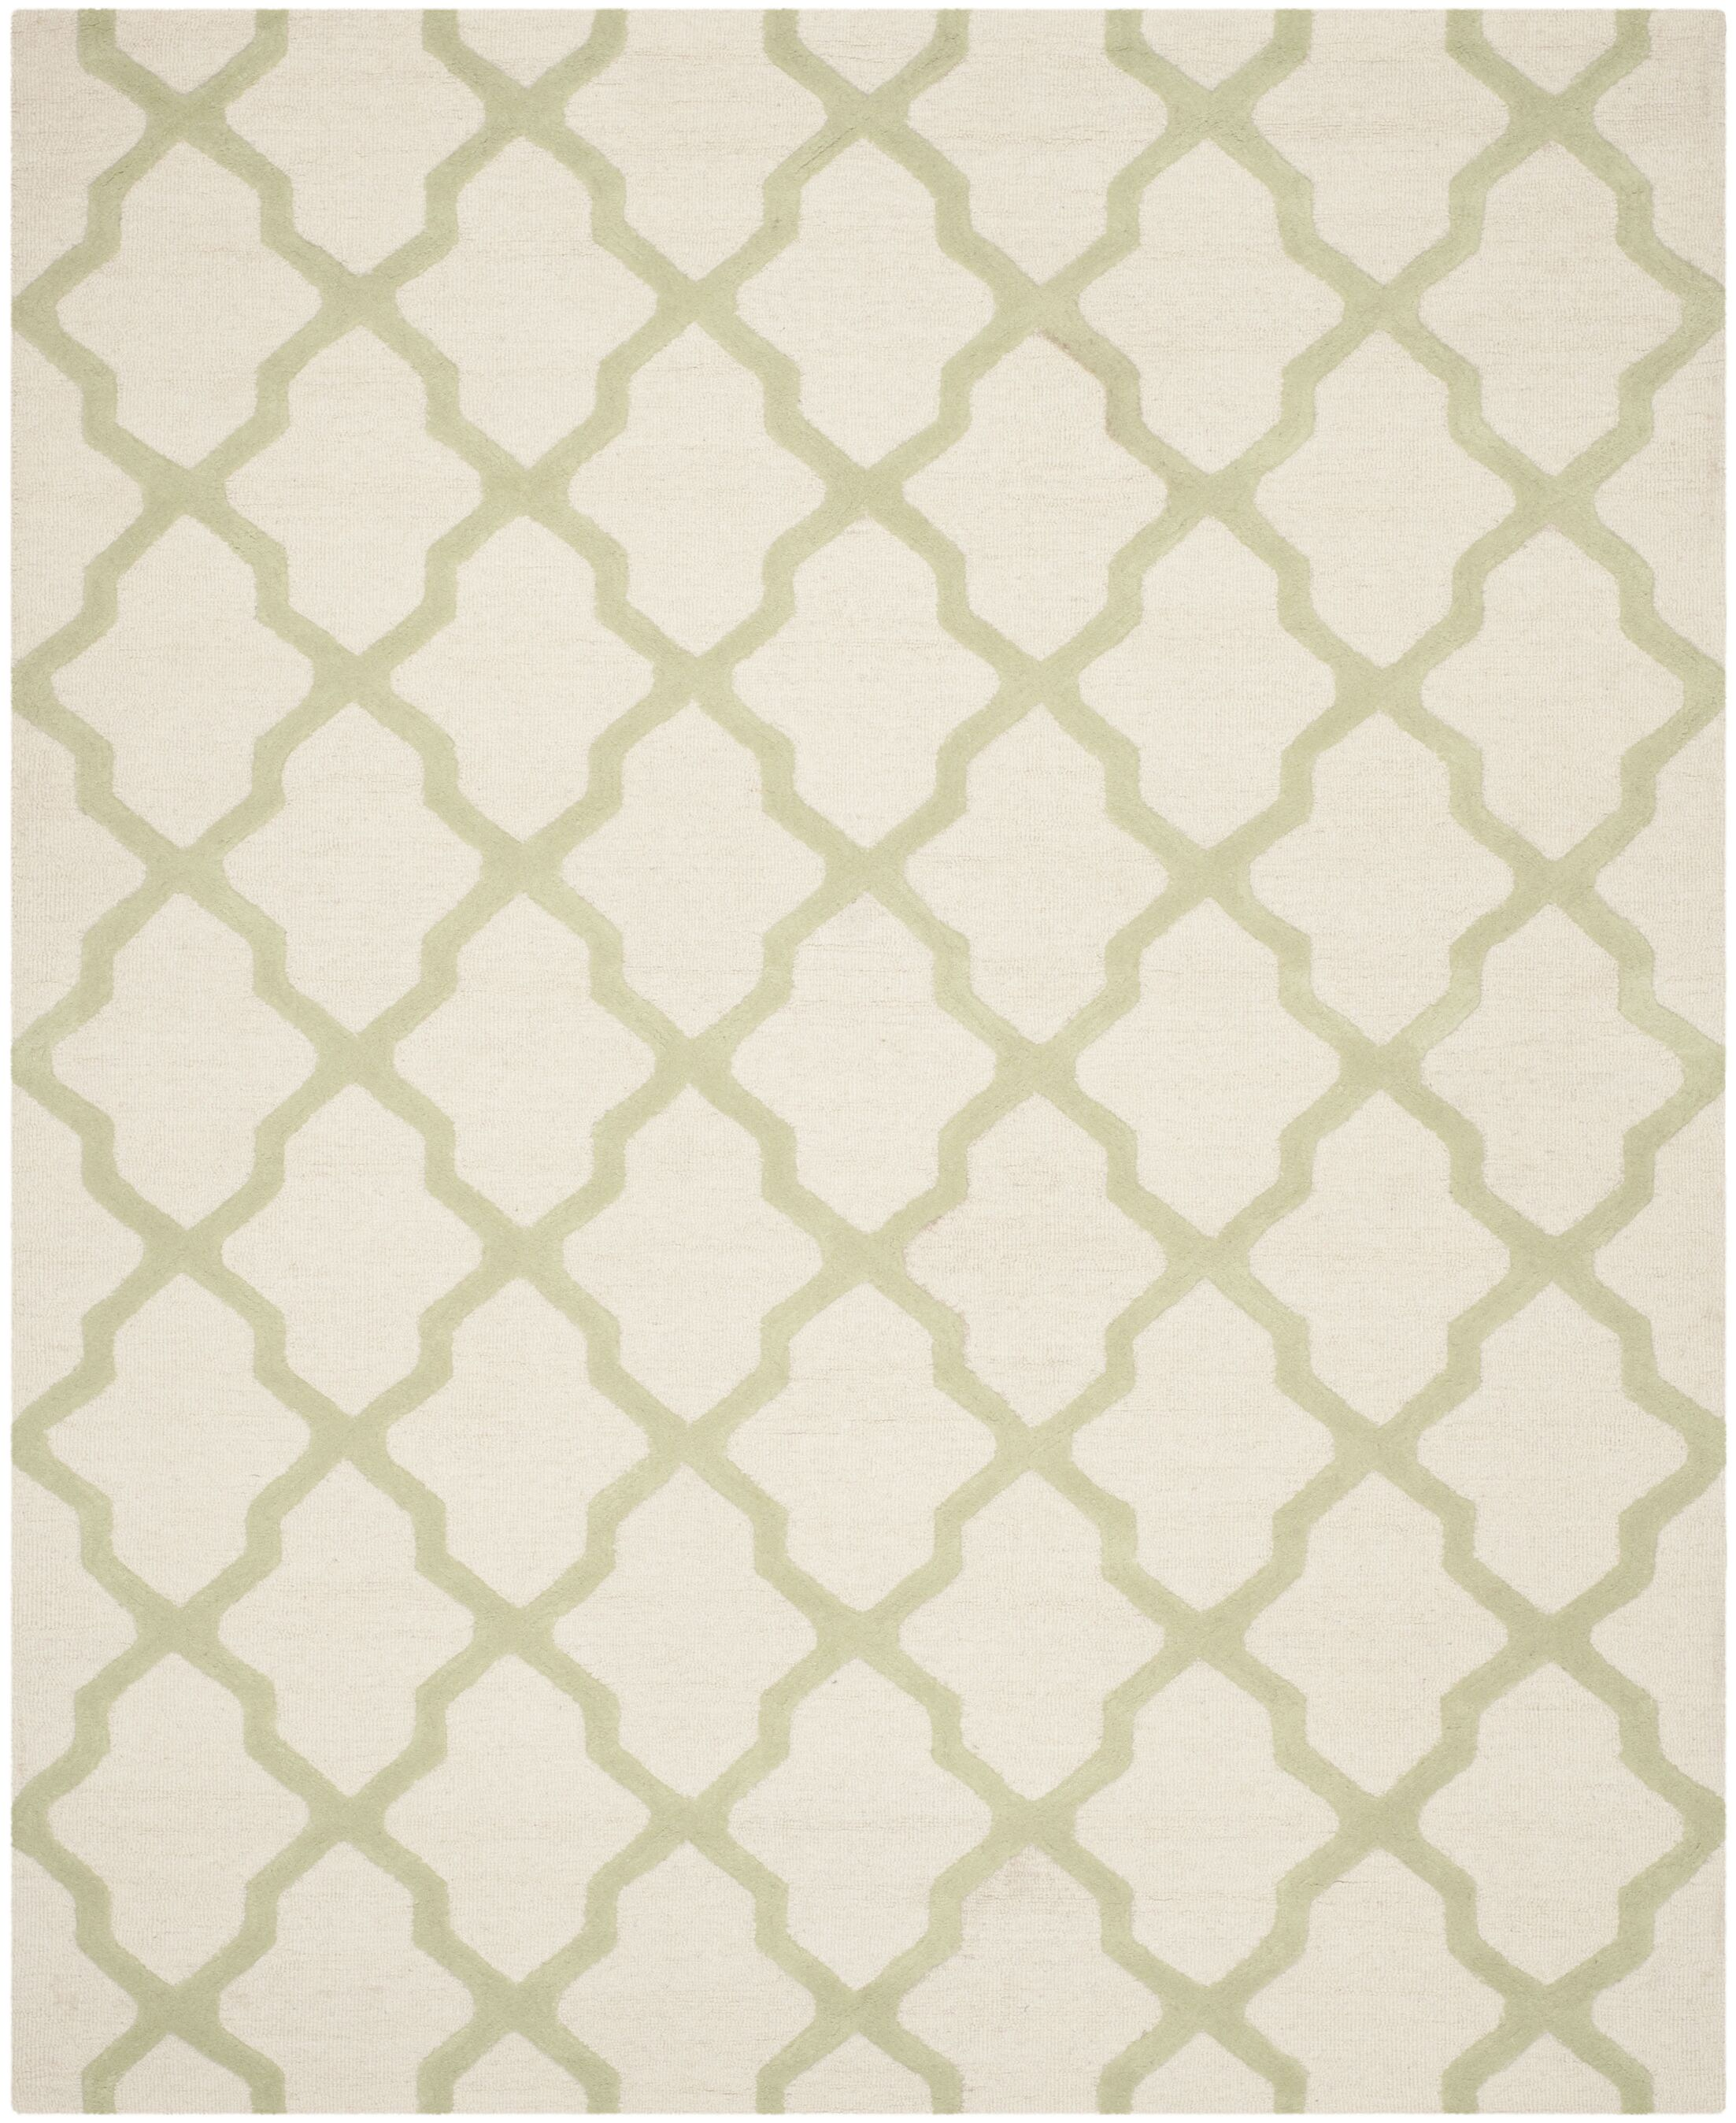 Gillam Hand-Tufted Ivory / Light Green Area Rug Rug Size: Rectangle 6' x 9'